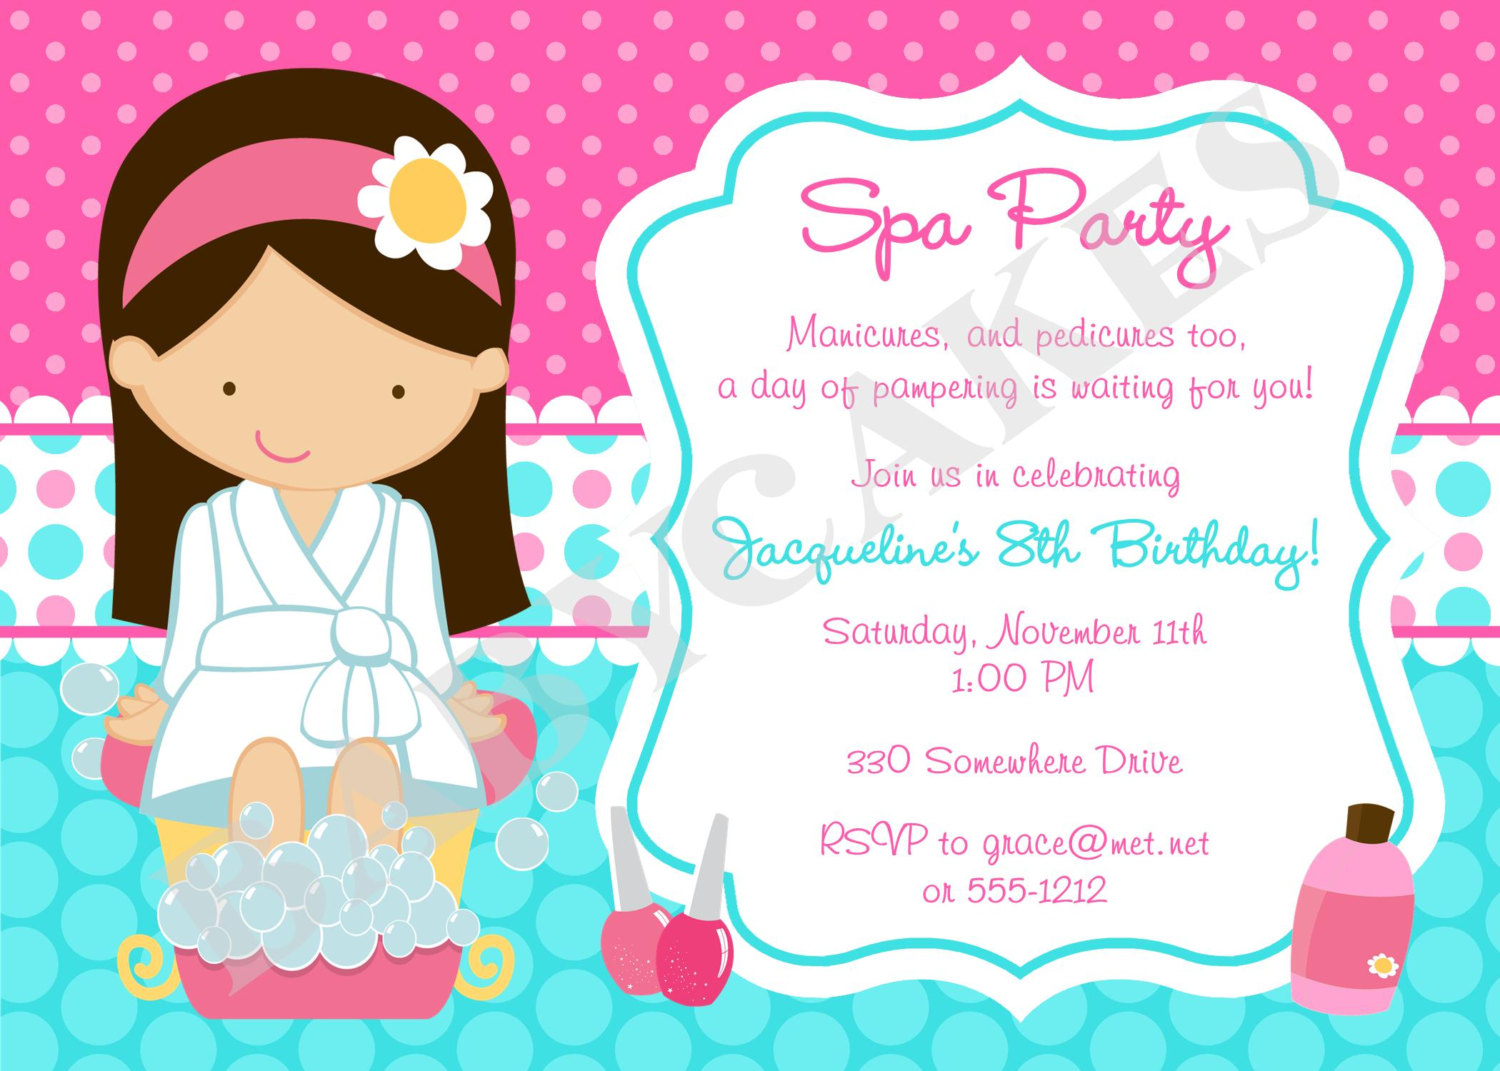 spa themed birthday party invitations printable ; spa-party-invitations-and-get-ideas-how-to-make-stunning-Party-invitation-appearance-1